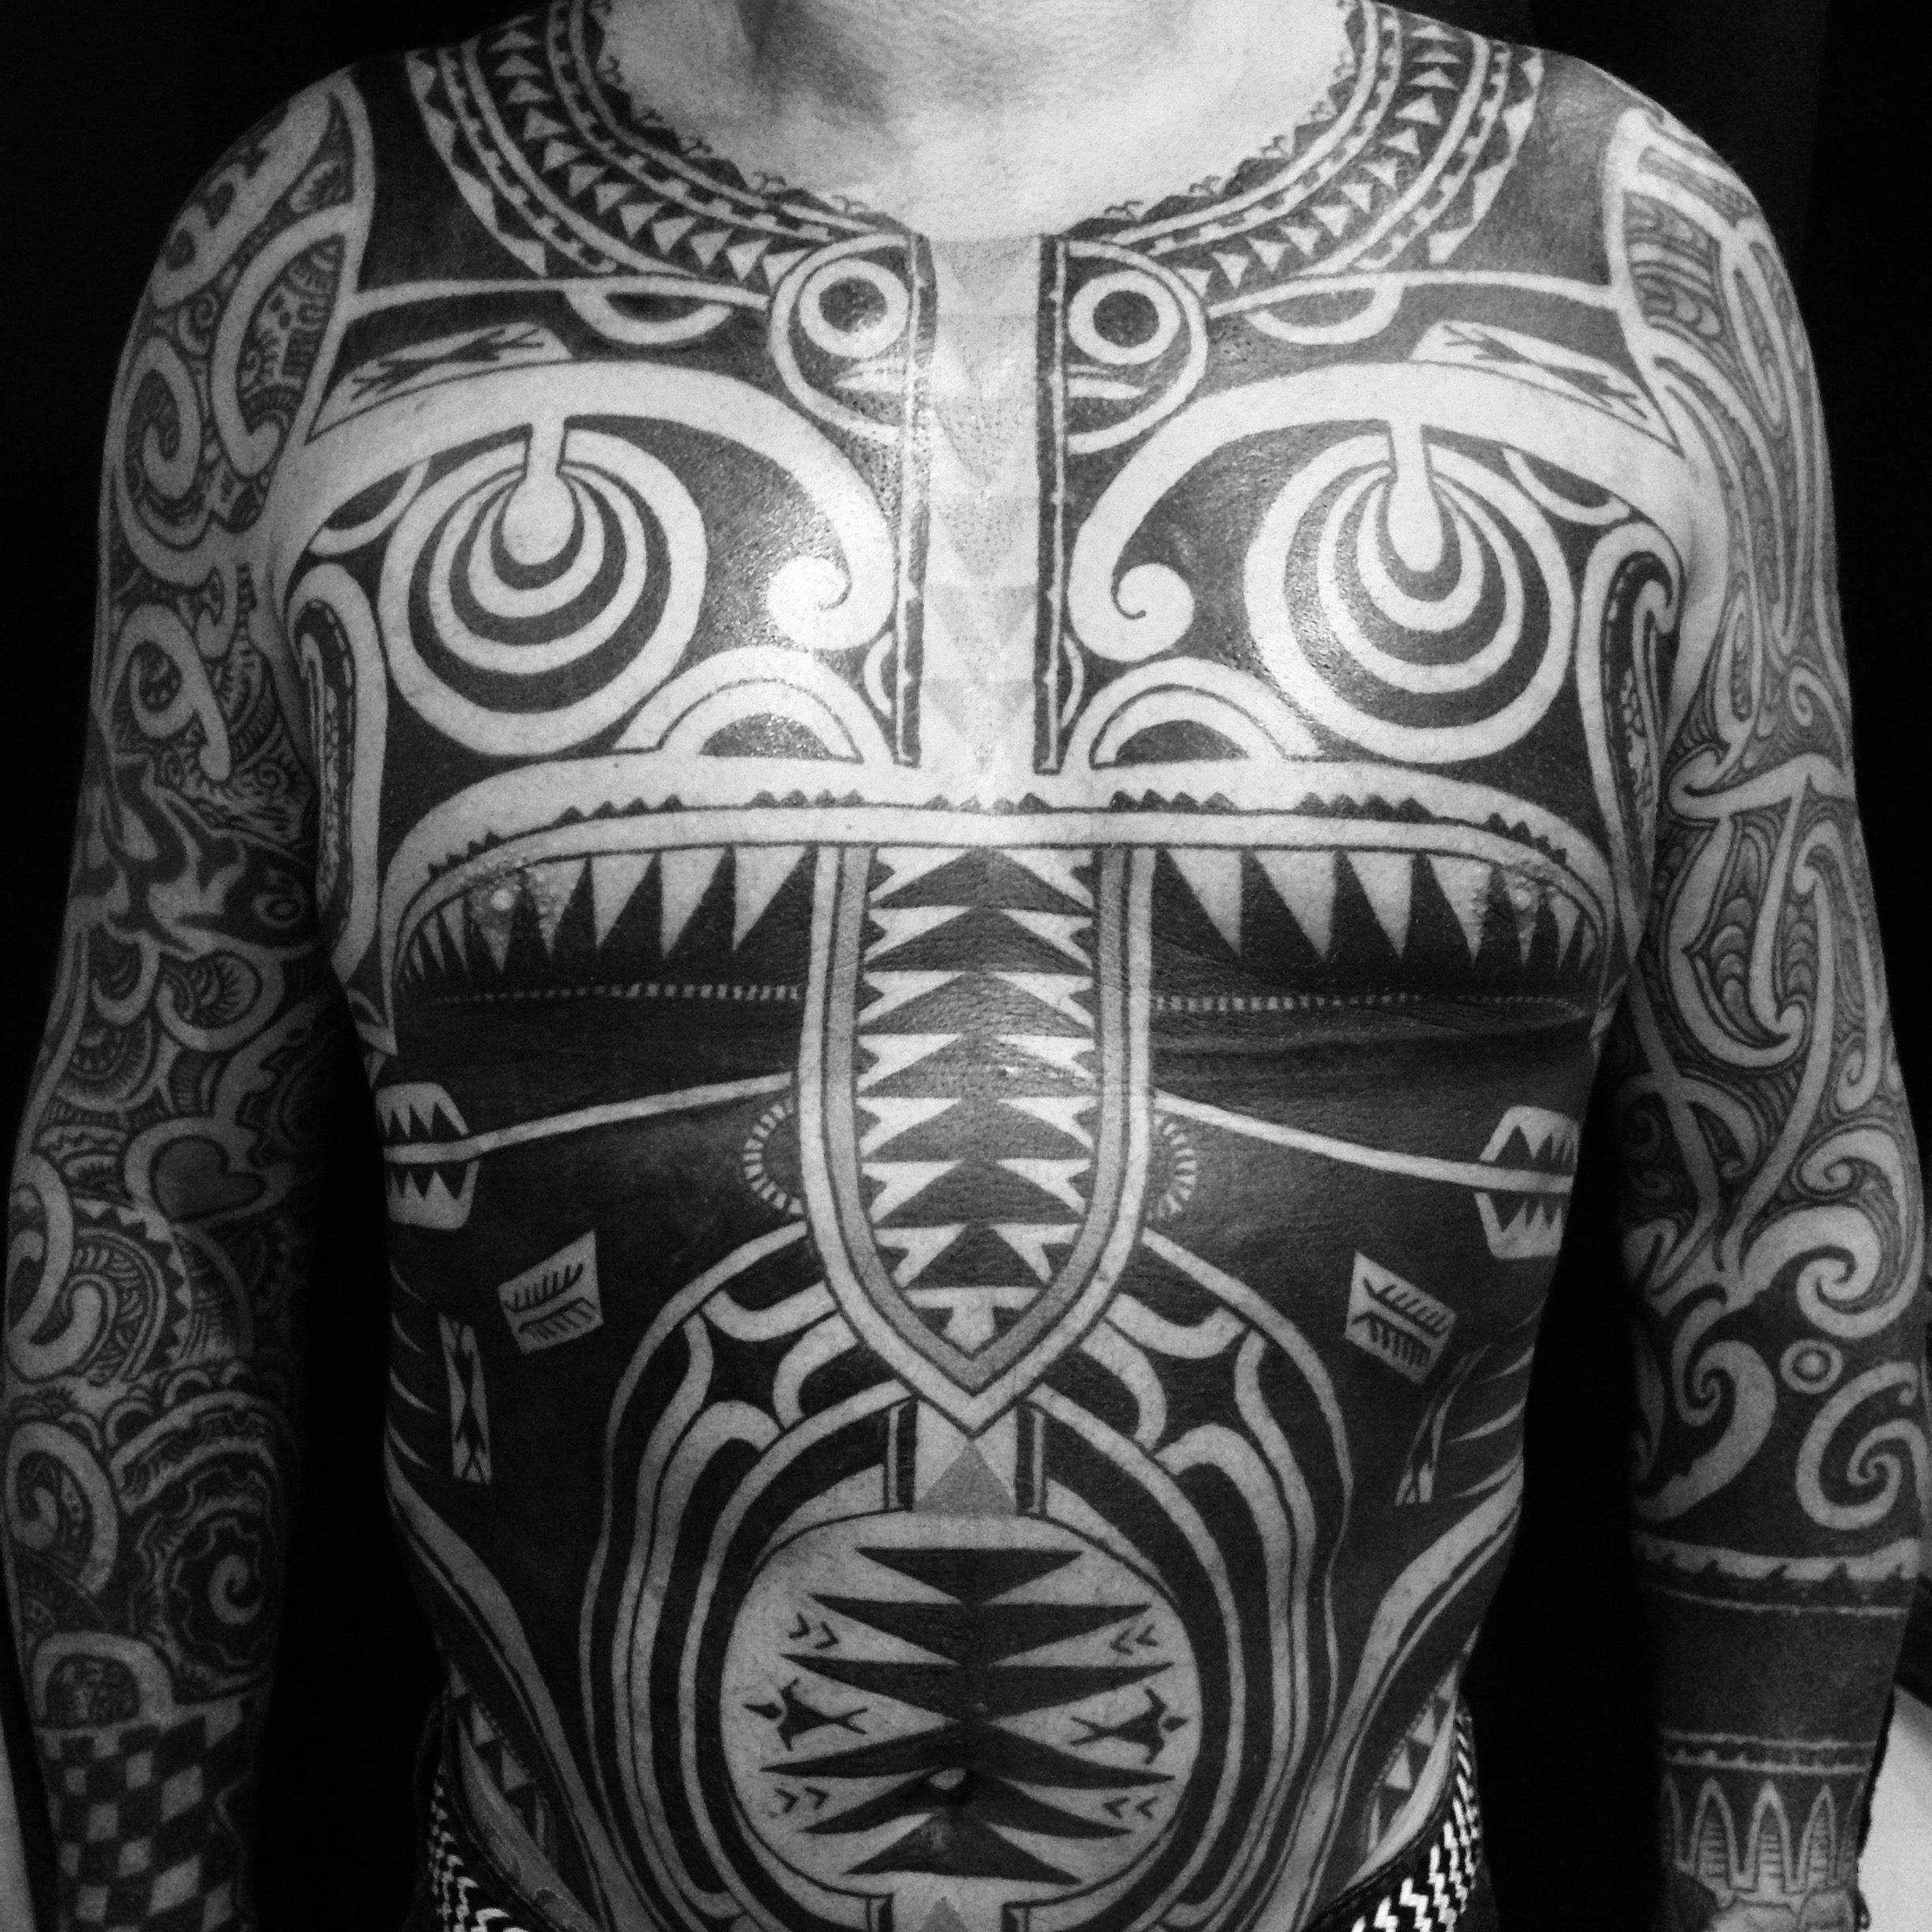 Marquesan mix chestpiece